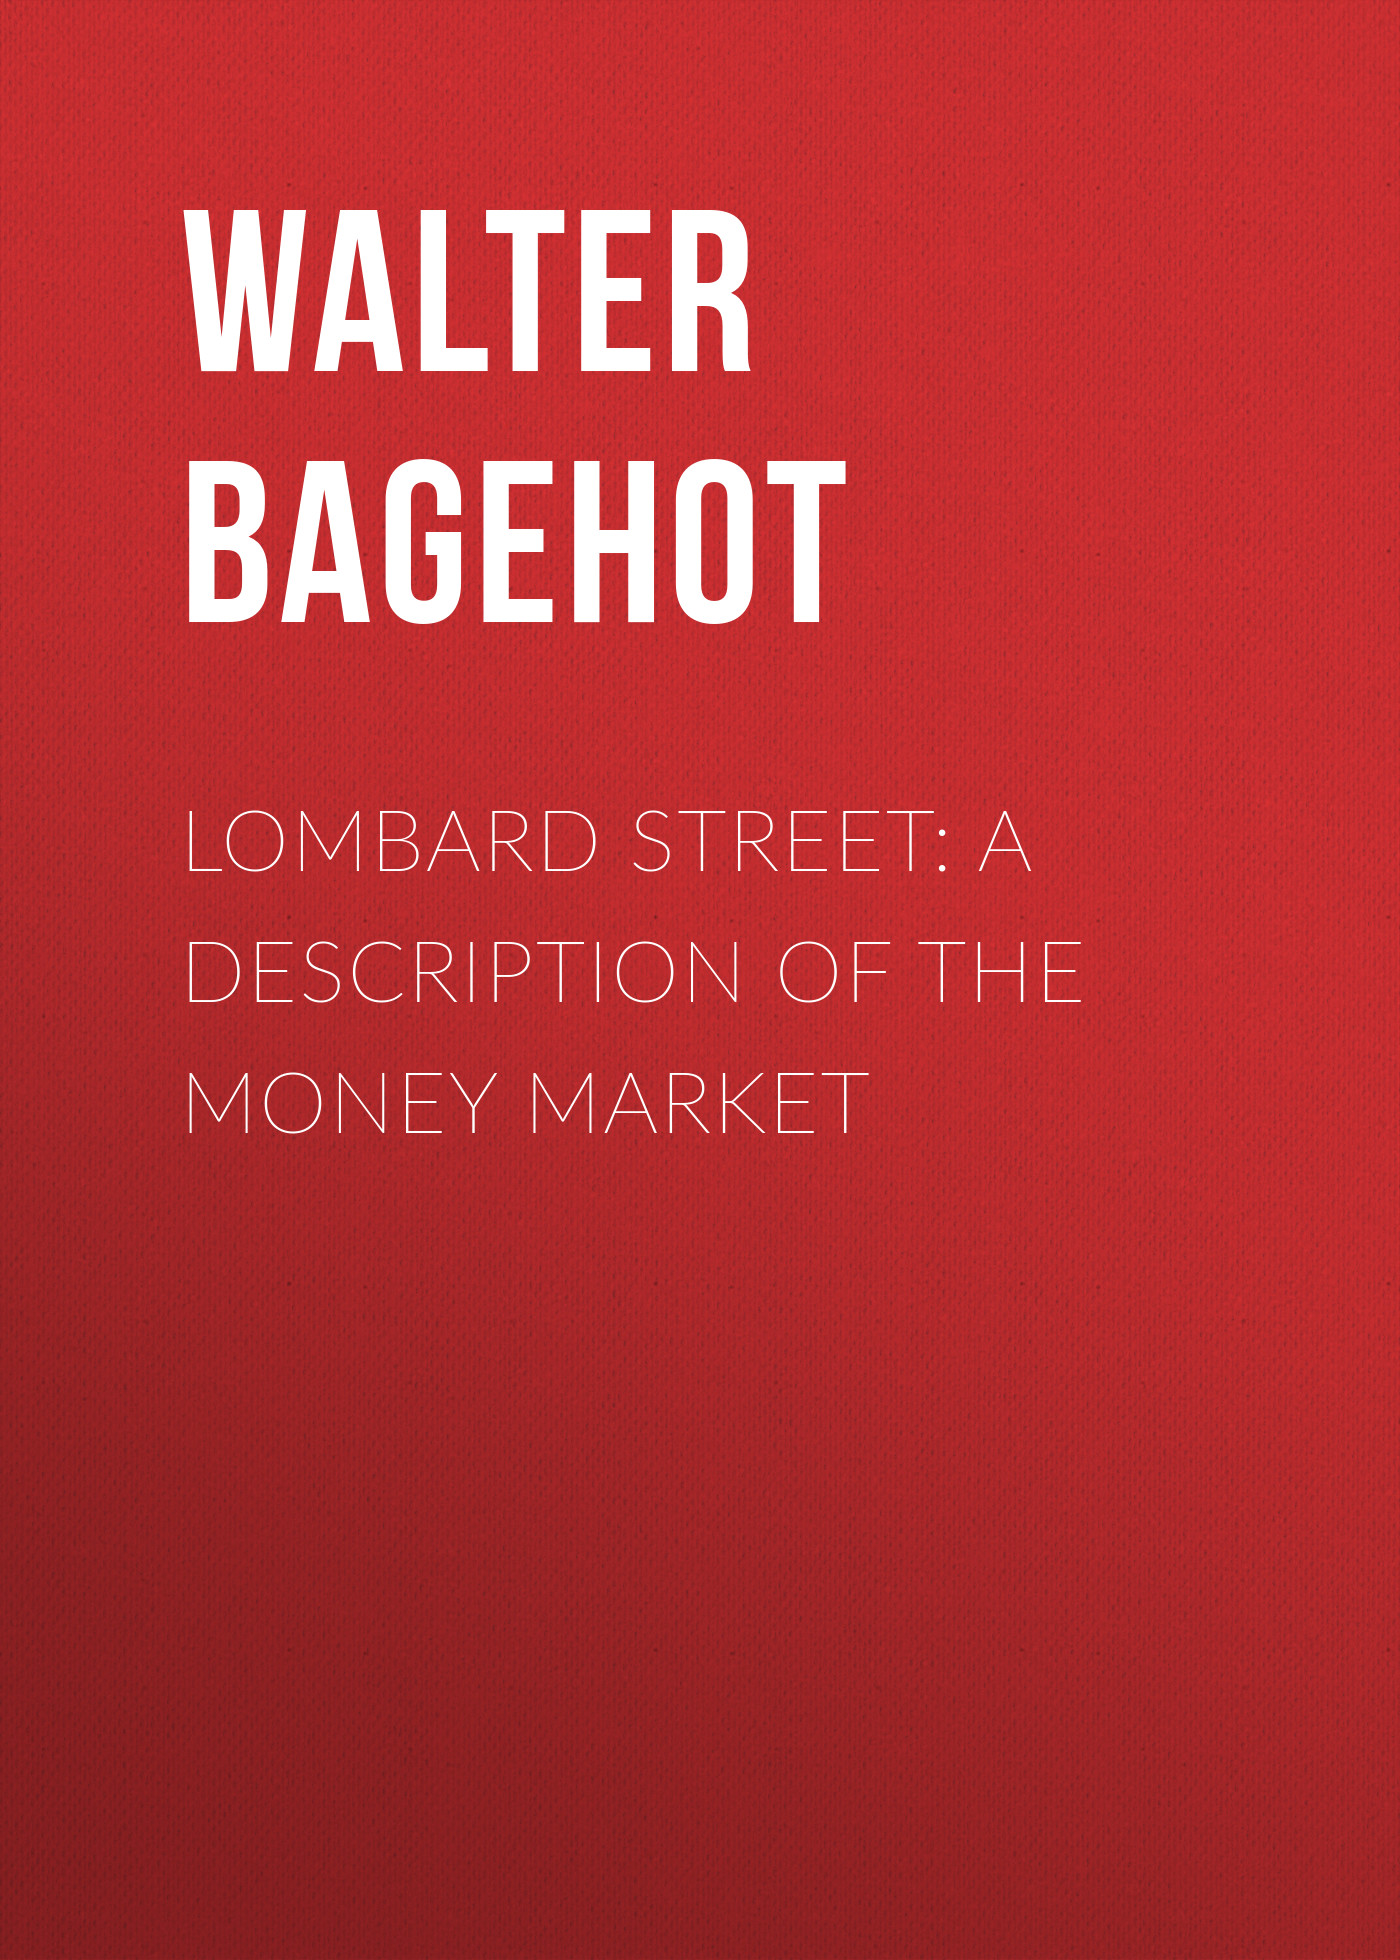 Walter Bagehot Lombard Street: A Description of the Money Market